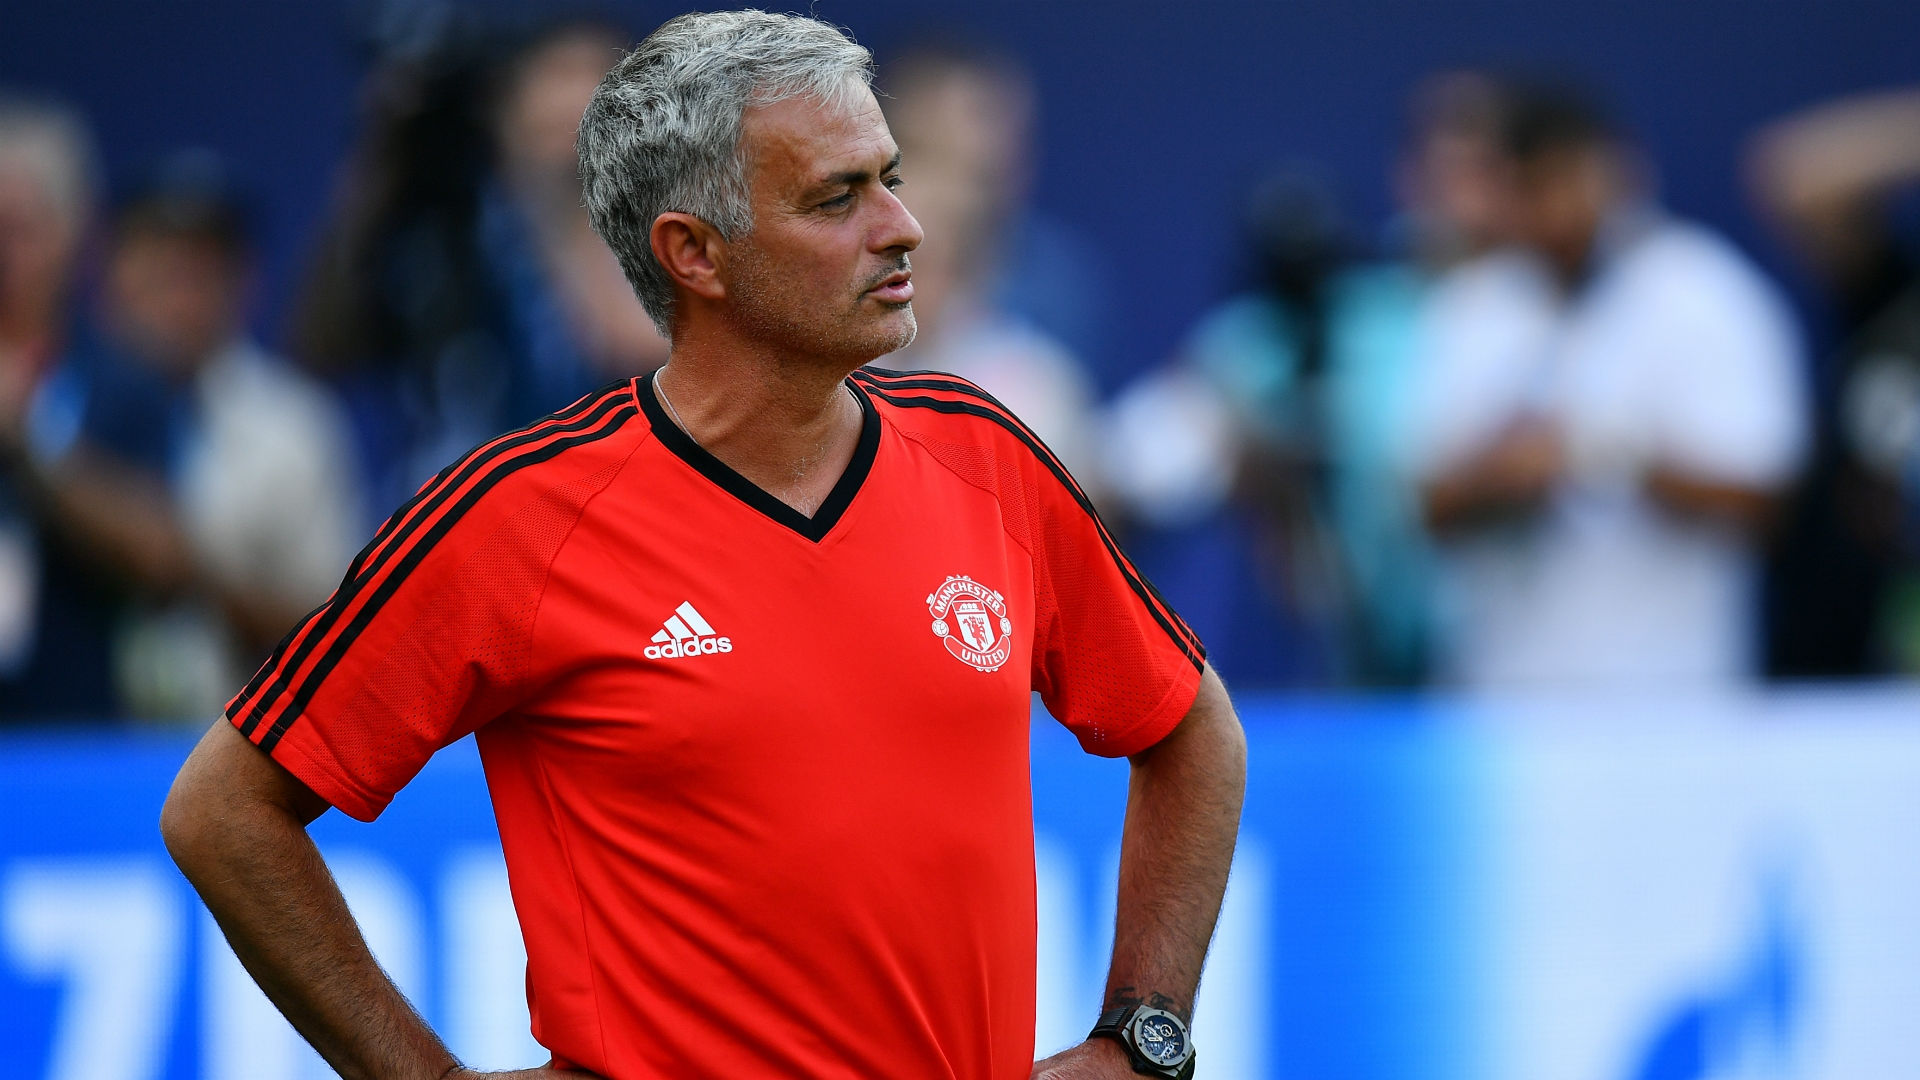 'I'm on fire' – Man United boss Mourinho ready for title challenge